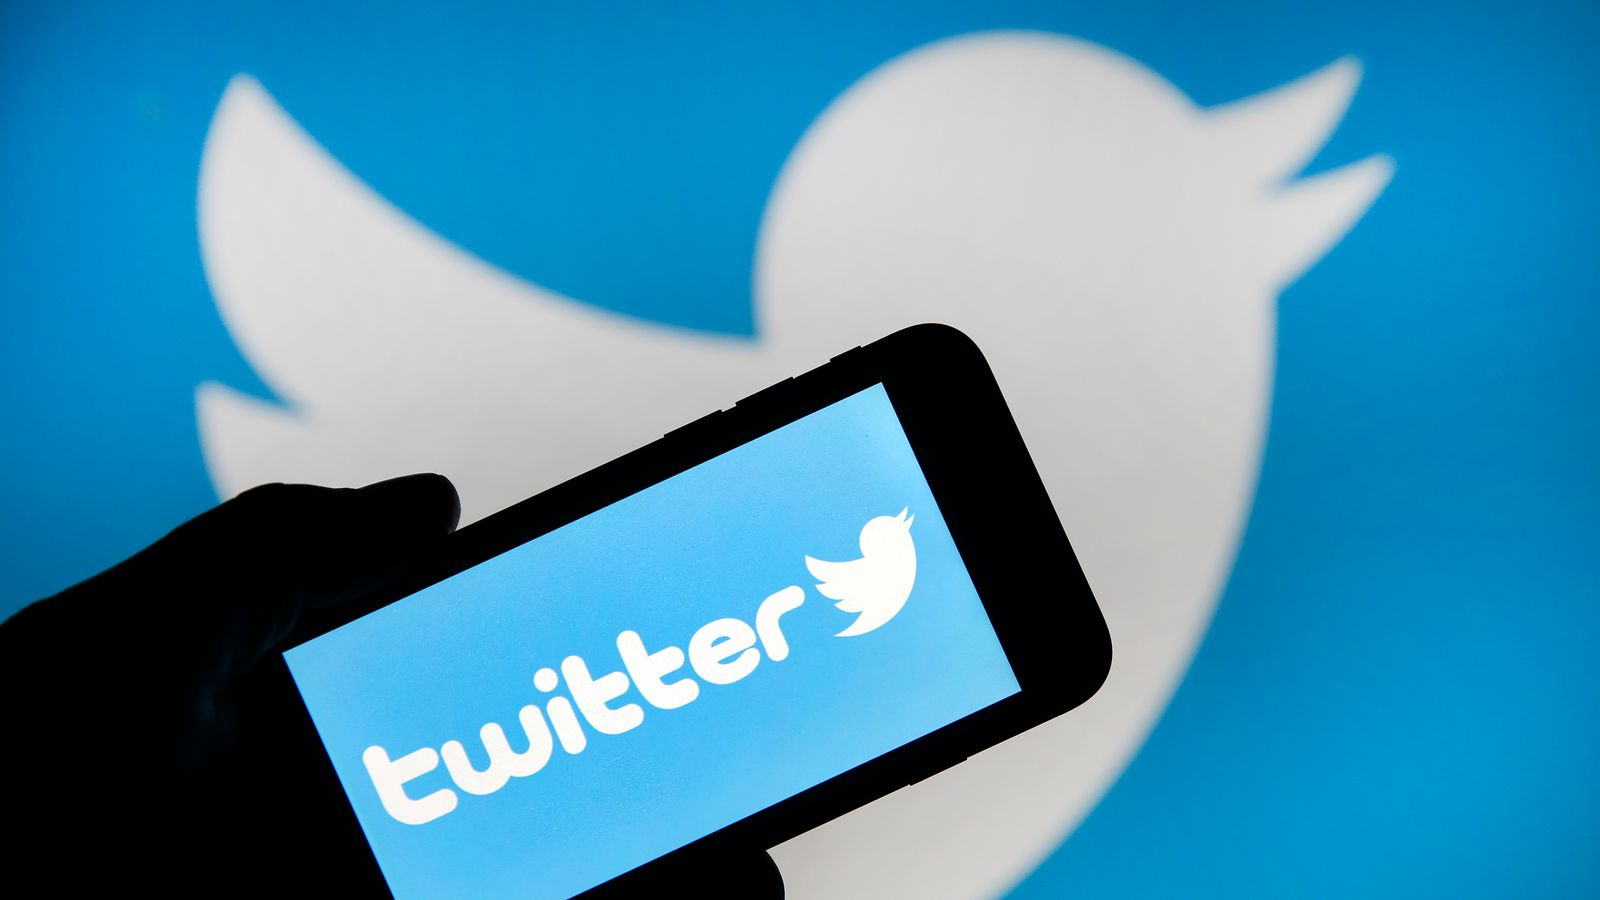 Twitter suffers outage after 'internal configuration' problems